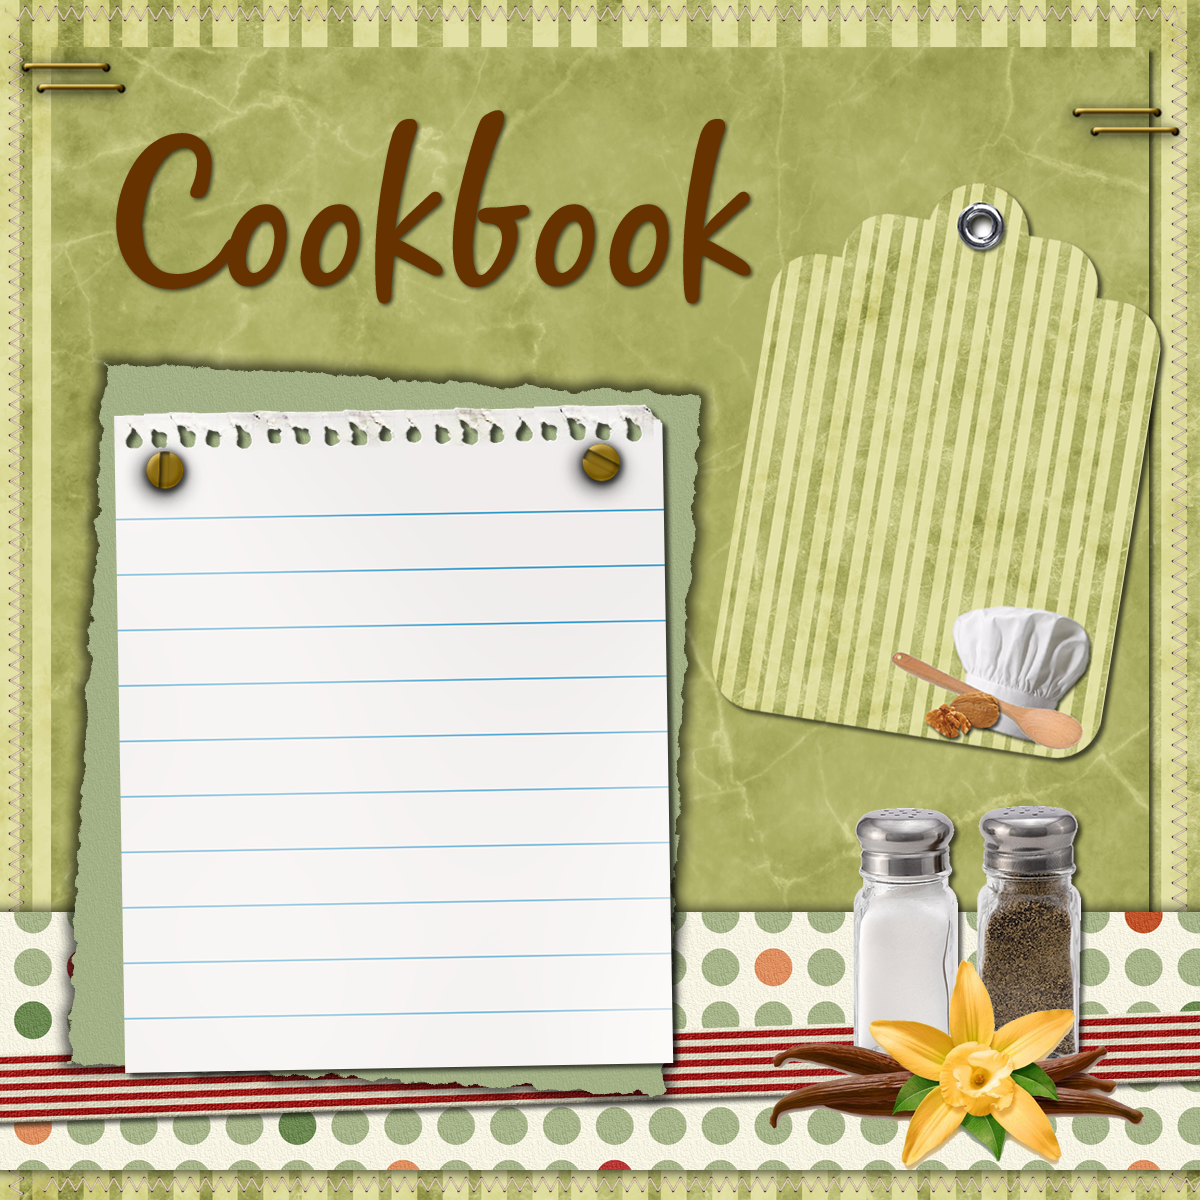 Cookbook Cover Page Ideas : Cookbook layout ideas imgkid the image kid has it